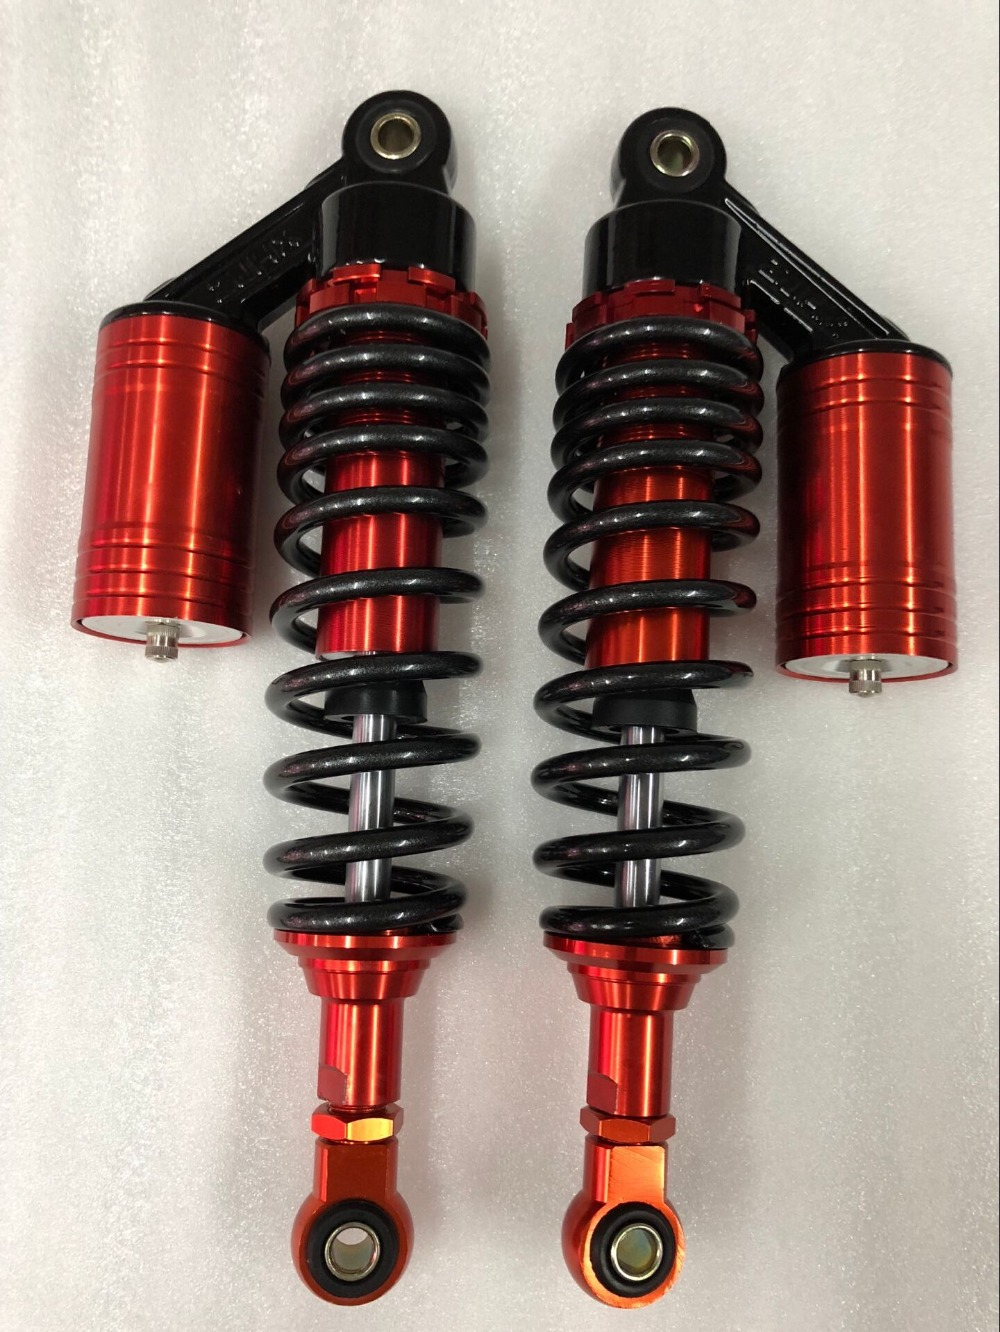 8mm spring Motorcycle 290mm/300mm /310mm Nitrogen Rear Shock Absorbers for Honda Yamaha suzuki Kawasaki Gokart Moped Quad ATV nitrogen spring nitrogen nitrogen spring spring mould maintenance inflatable new custom misumi